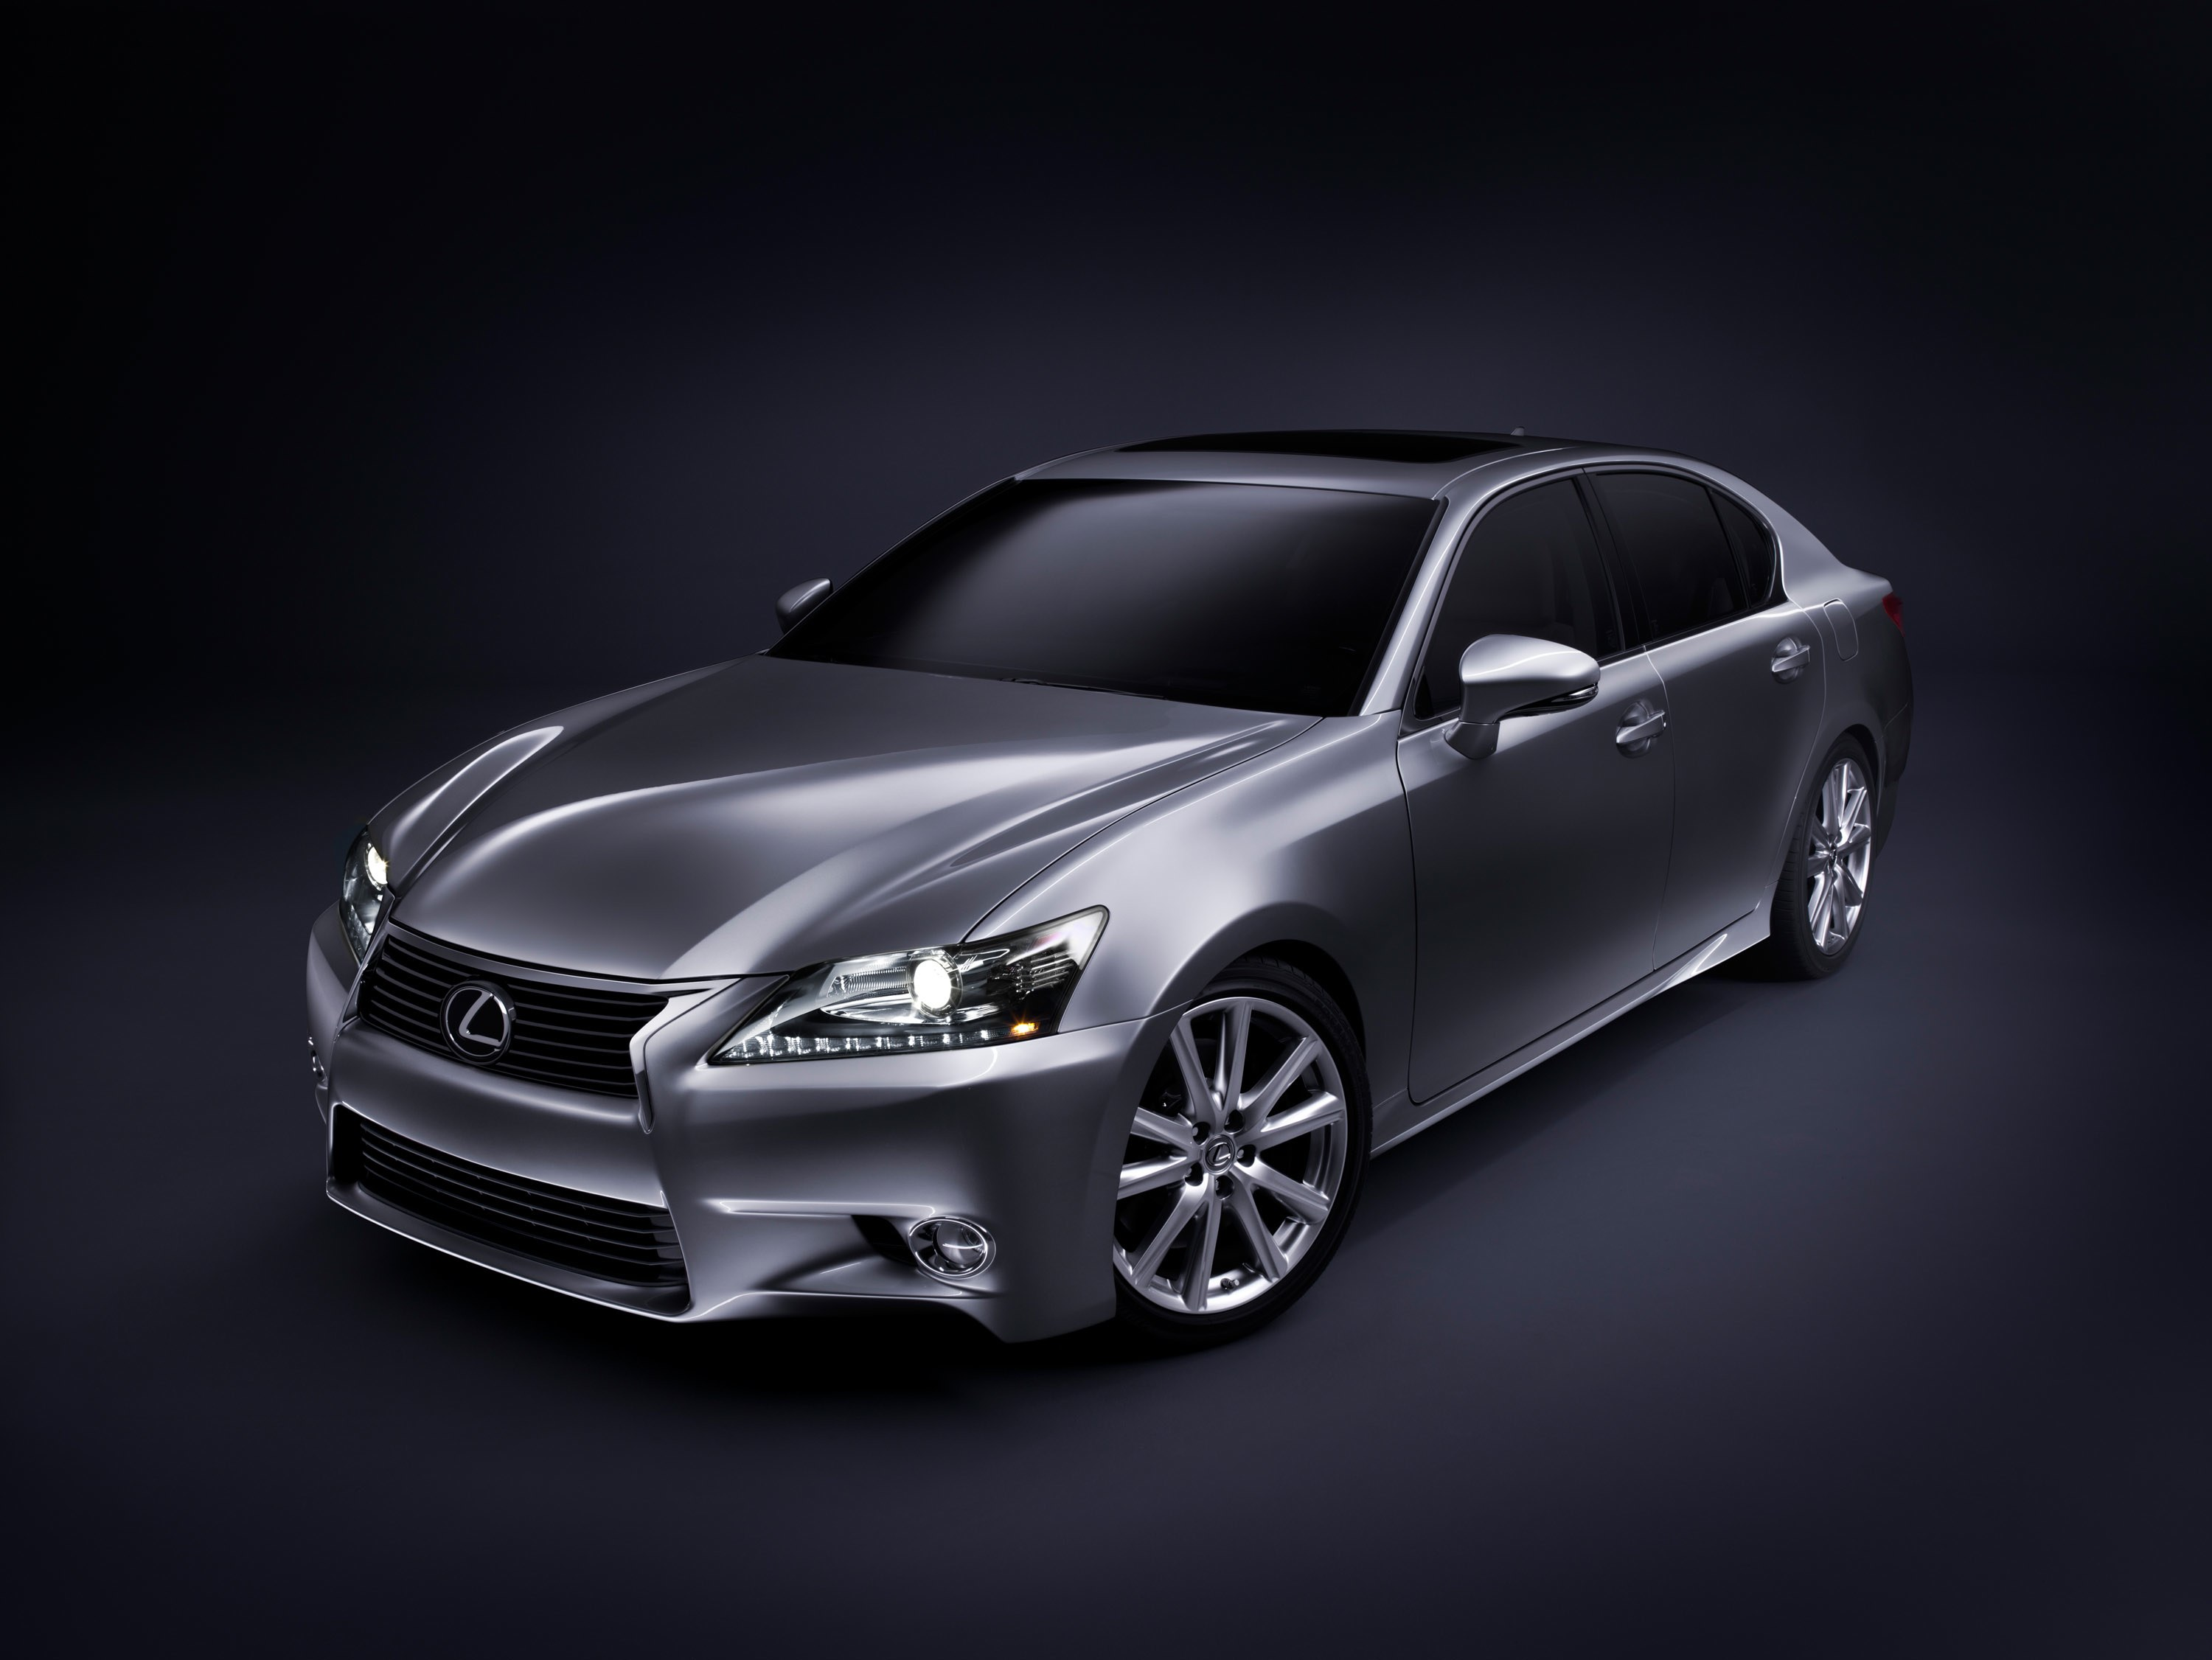 2013 lexus gs 350 photo gallery lexus enthusiast. Black Bedroom Furniture Sets. Home Design Ideas